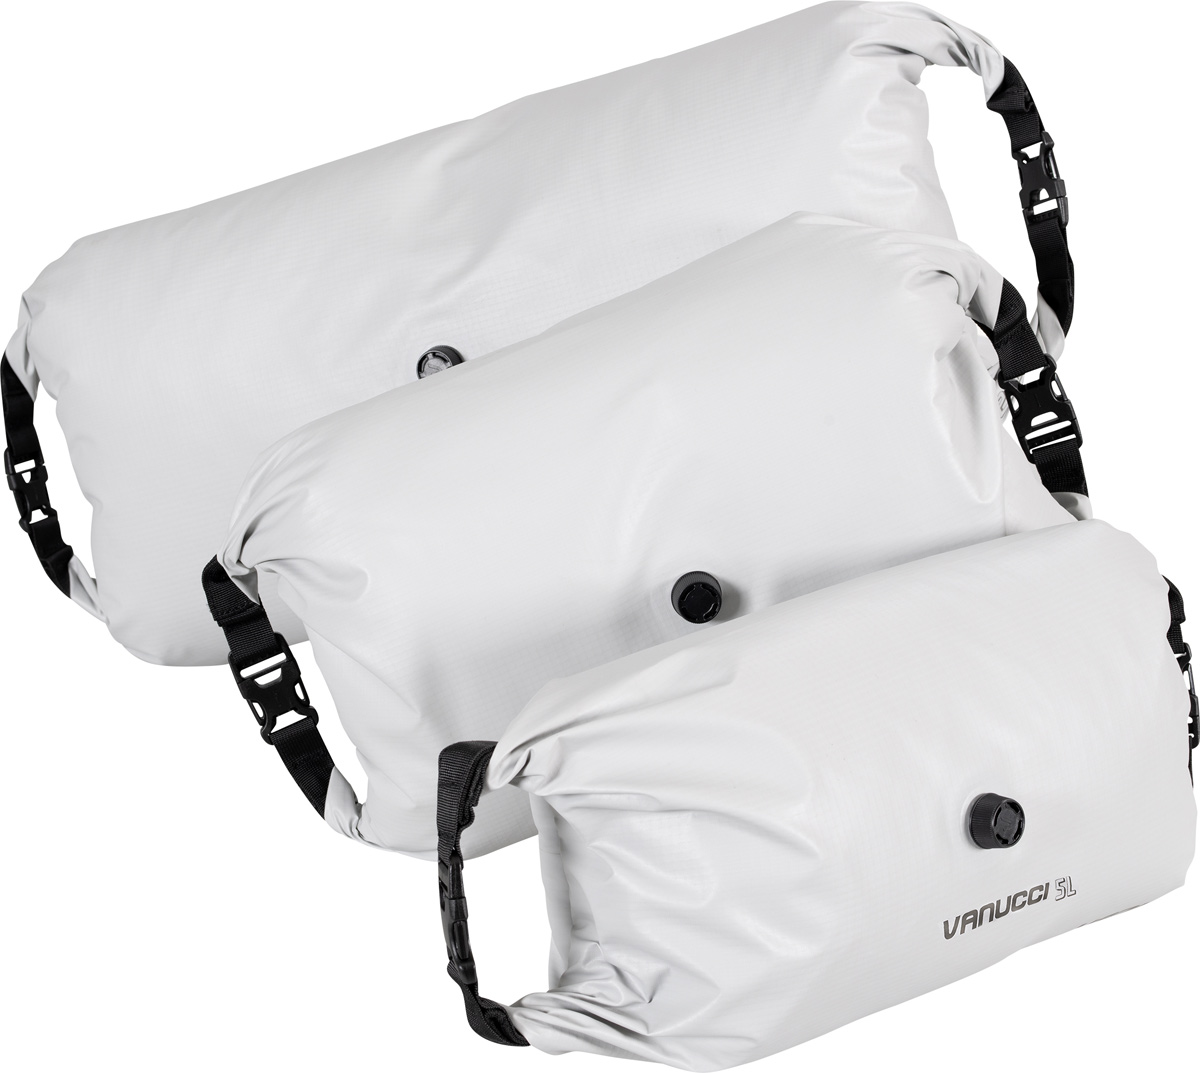 Sacs à compression Vanucci  Sac-moto-compression-vanucci-gamme_hd